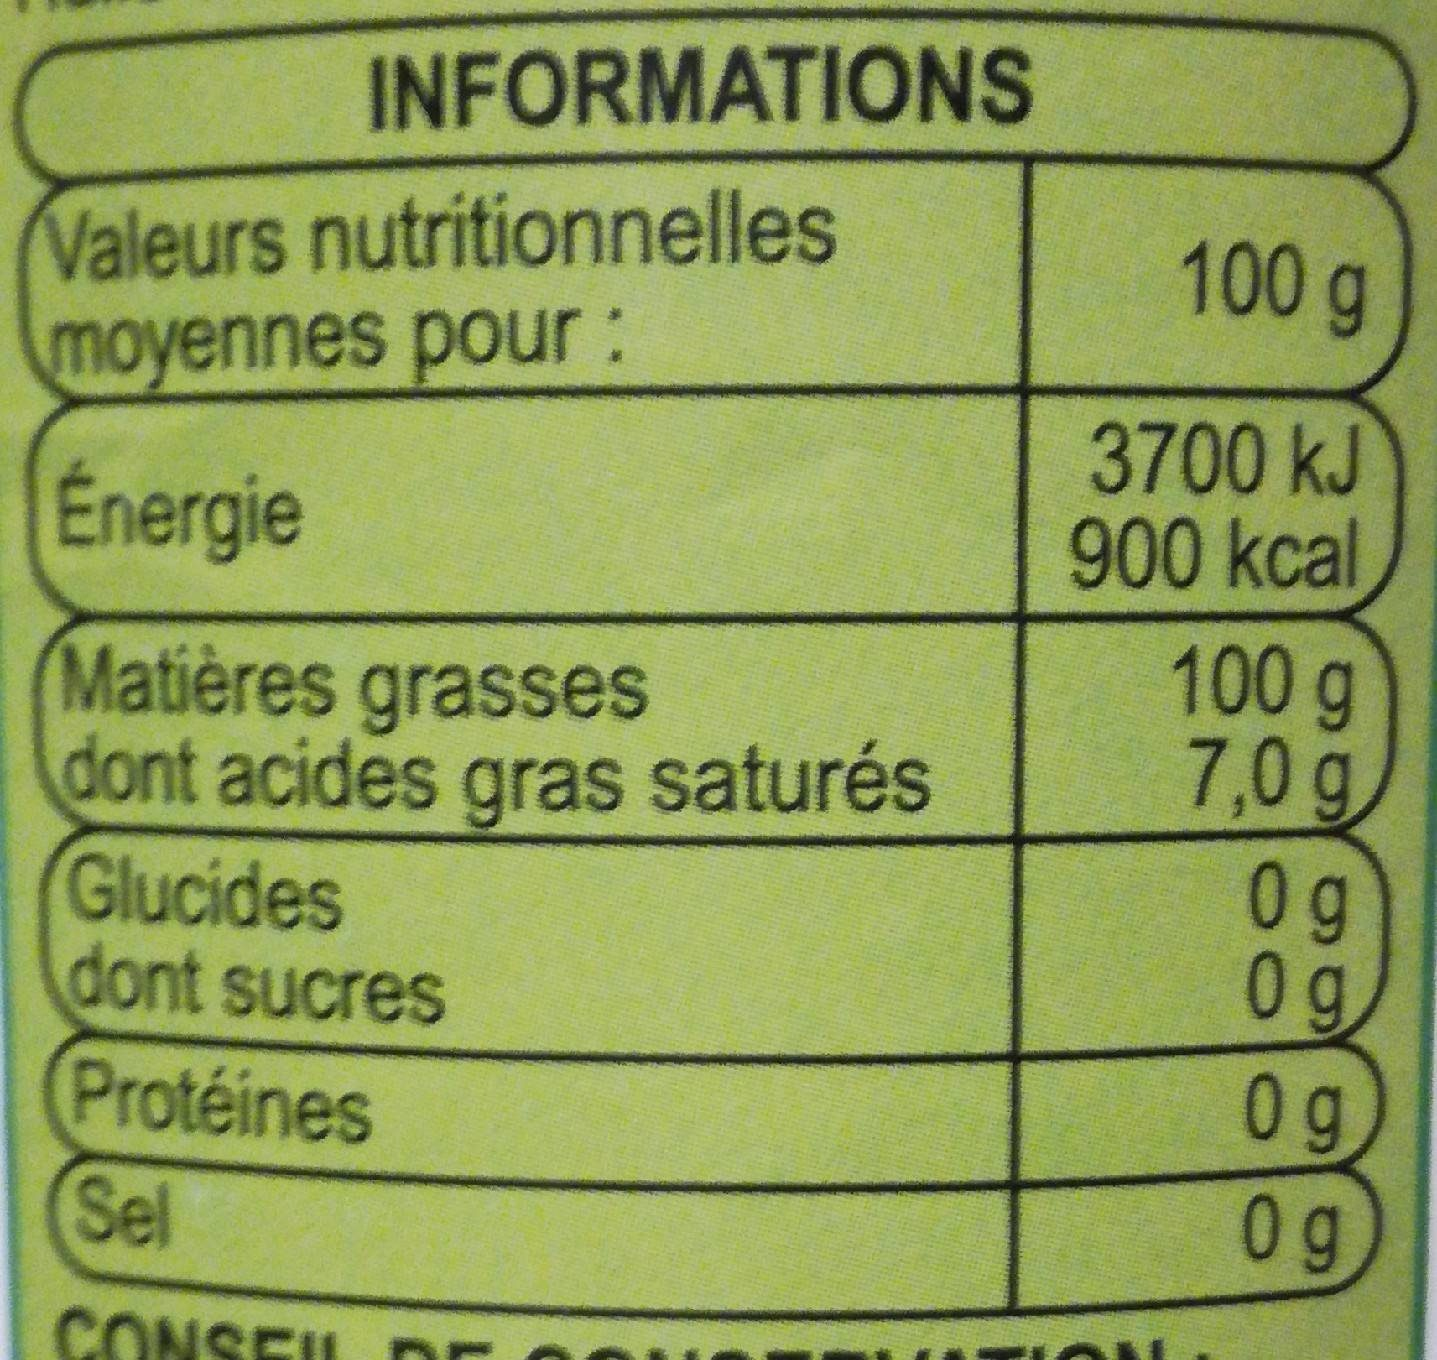 huile colza information nutritionnelle